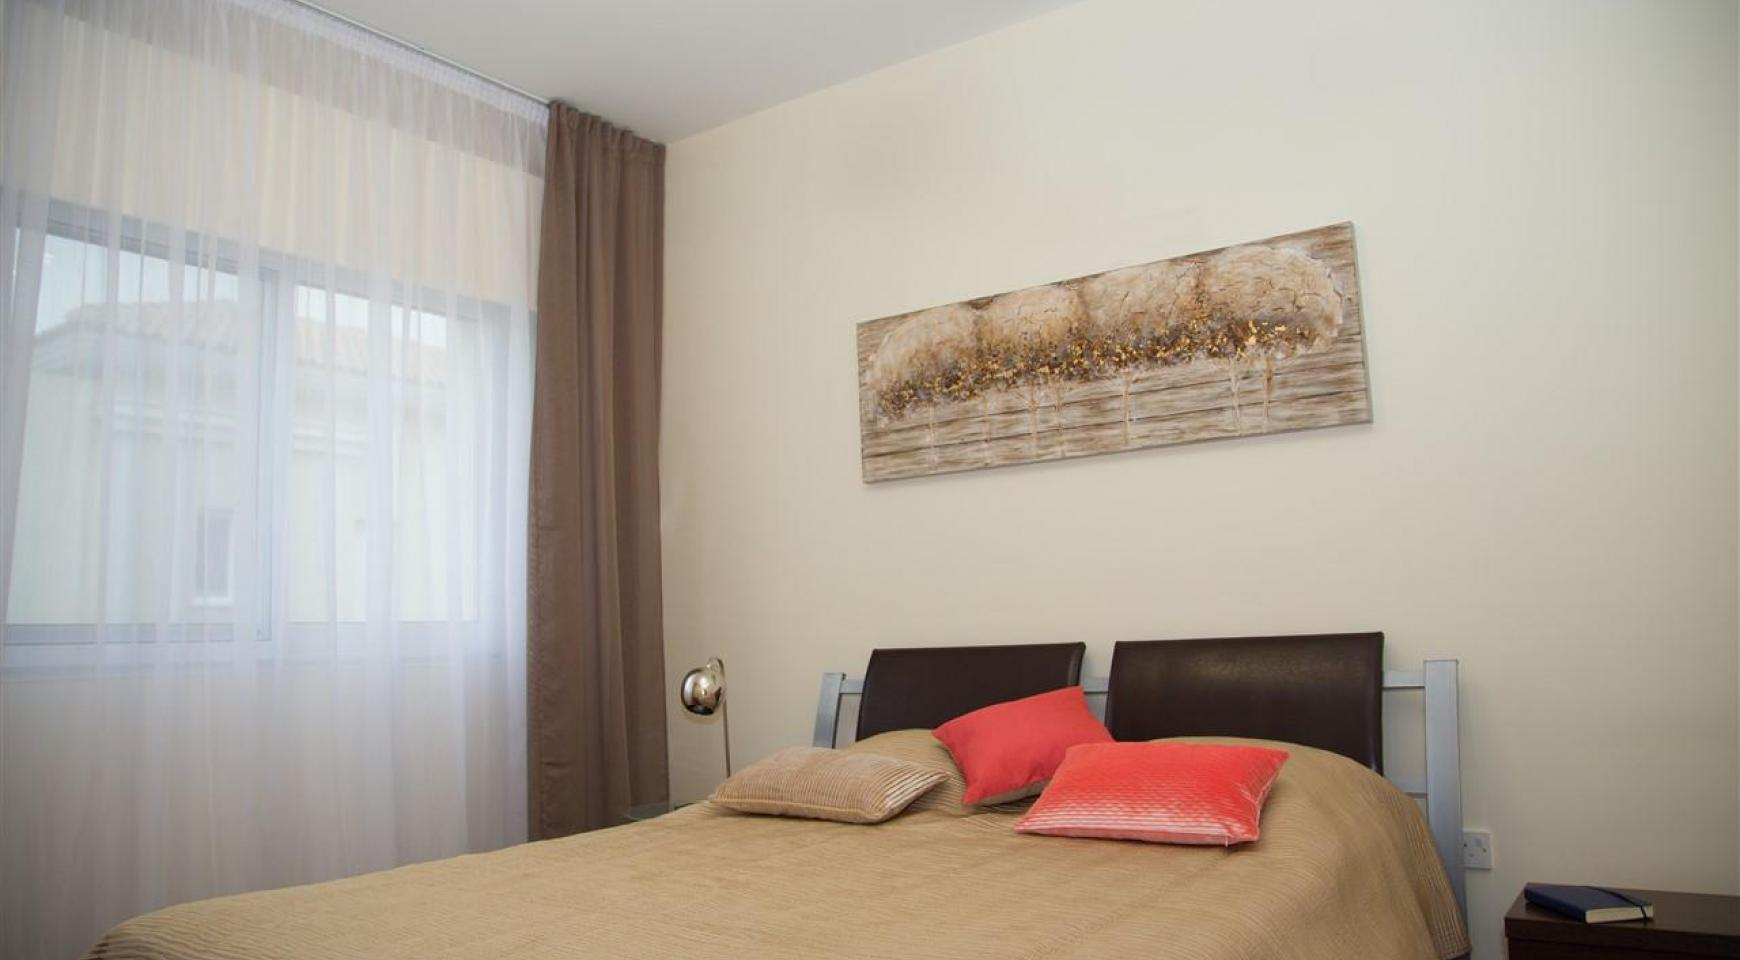 2 Bedroom Apartment in the Complex near the Sea - 19